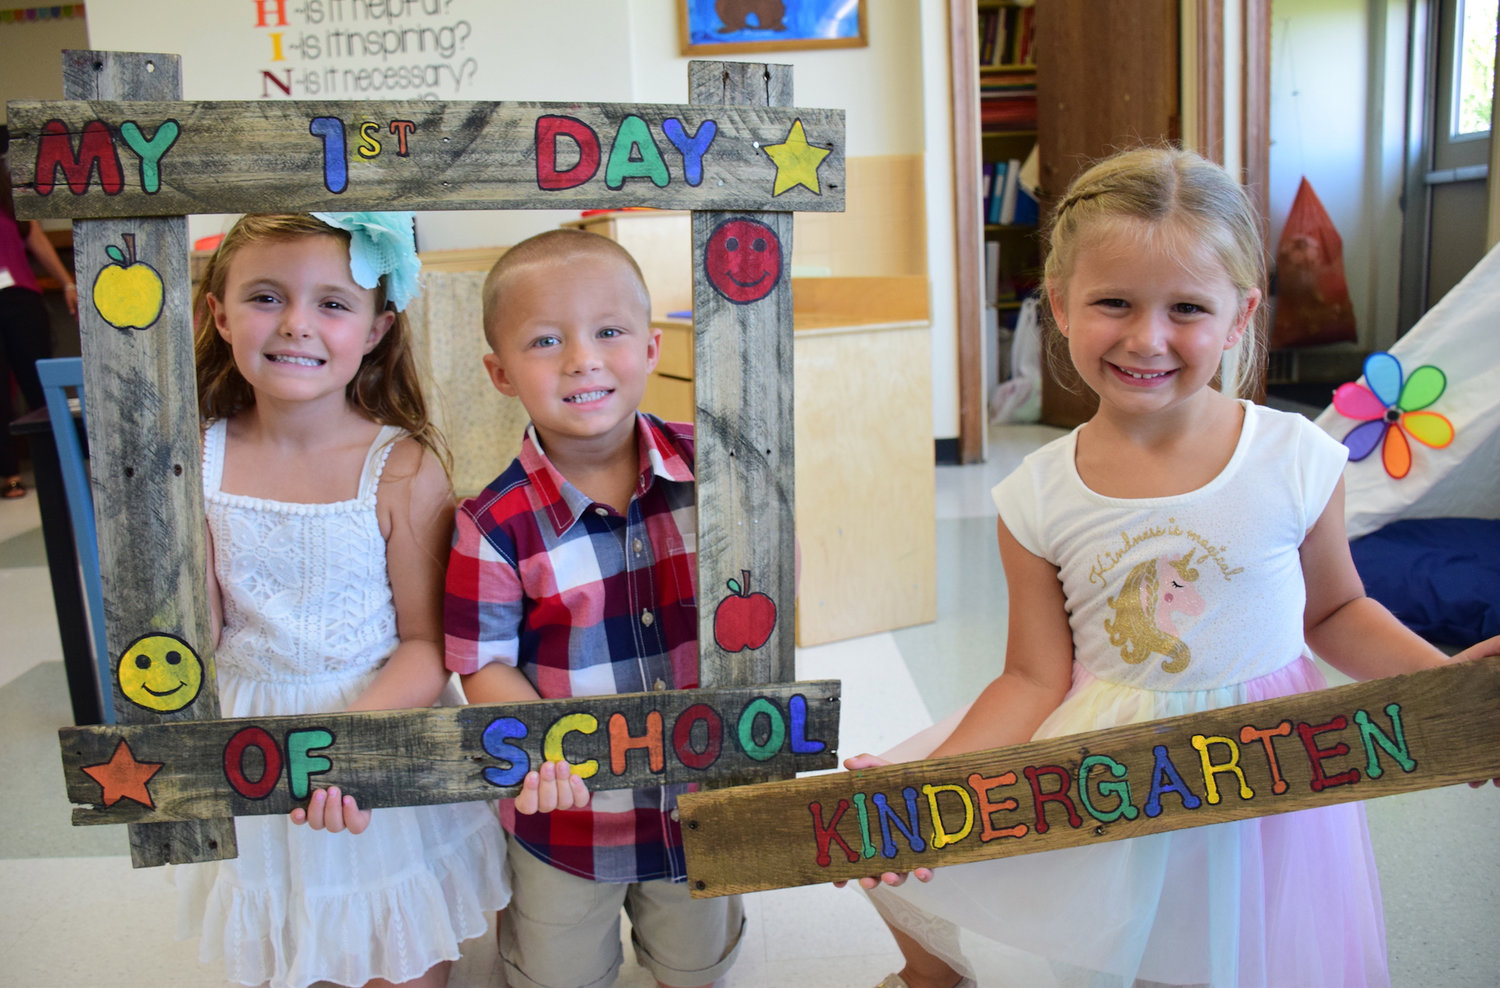 Seaford Manor Elementary School kindergartners, from left, Olivia Mascioli, Mason Kanover and Molly Davidson were excited for their first day of school.